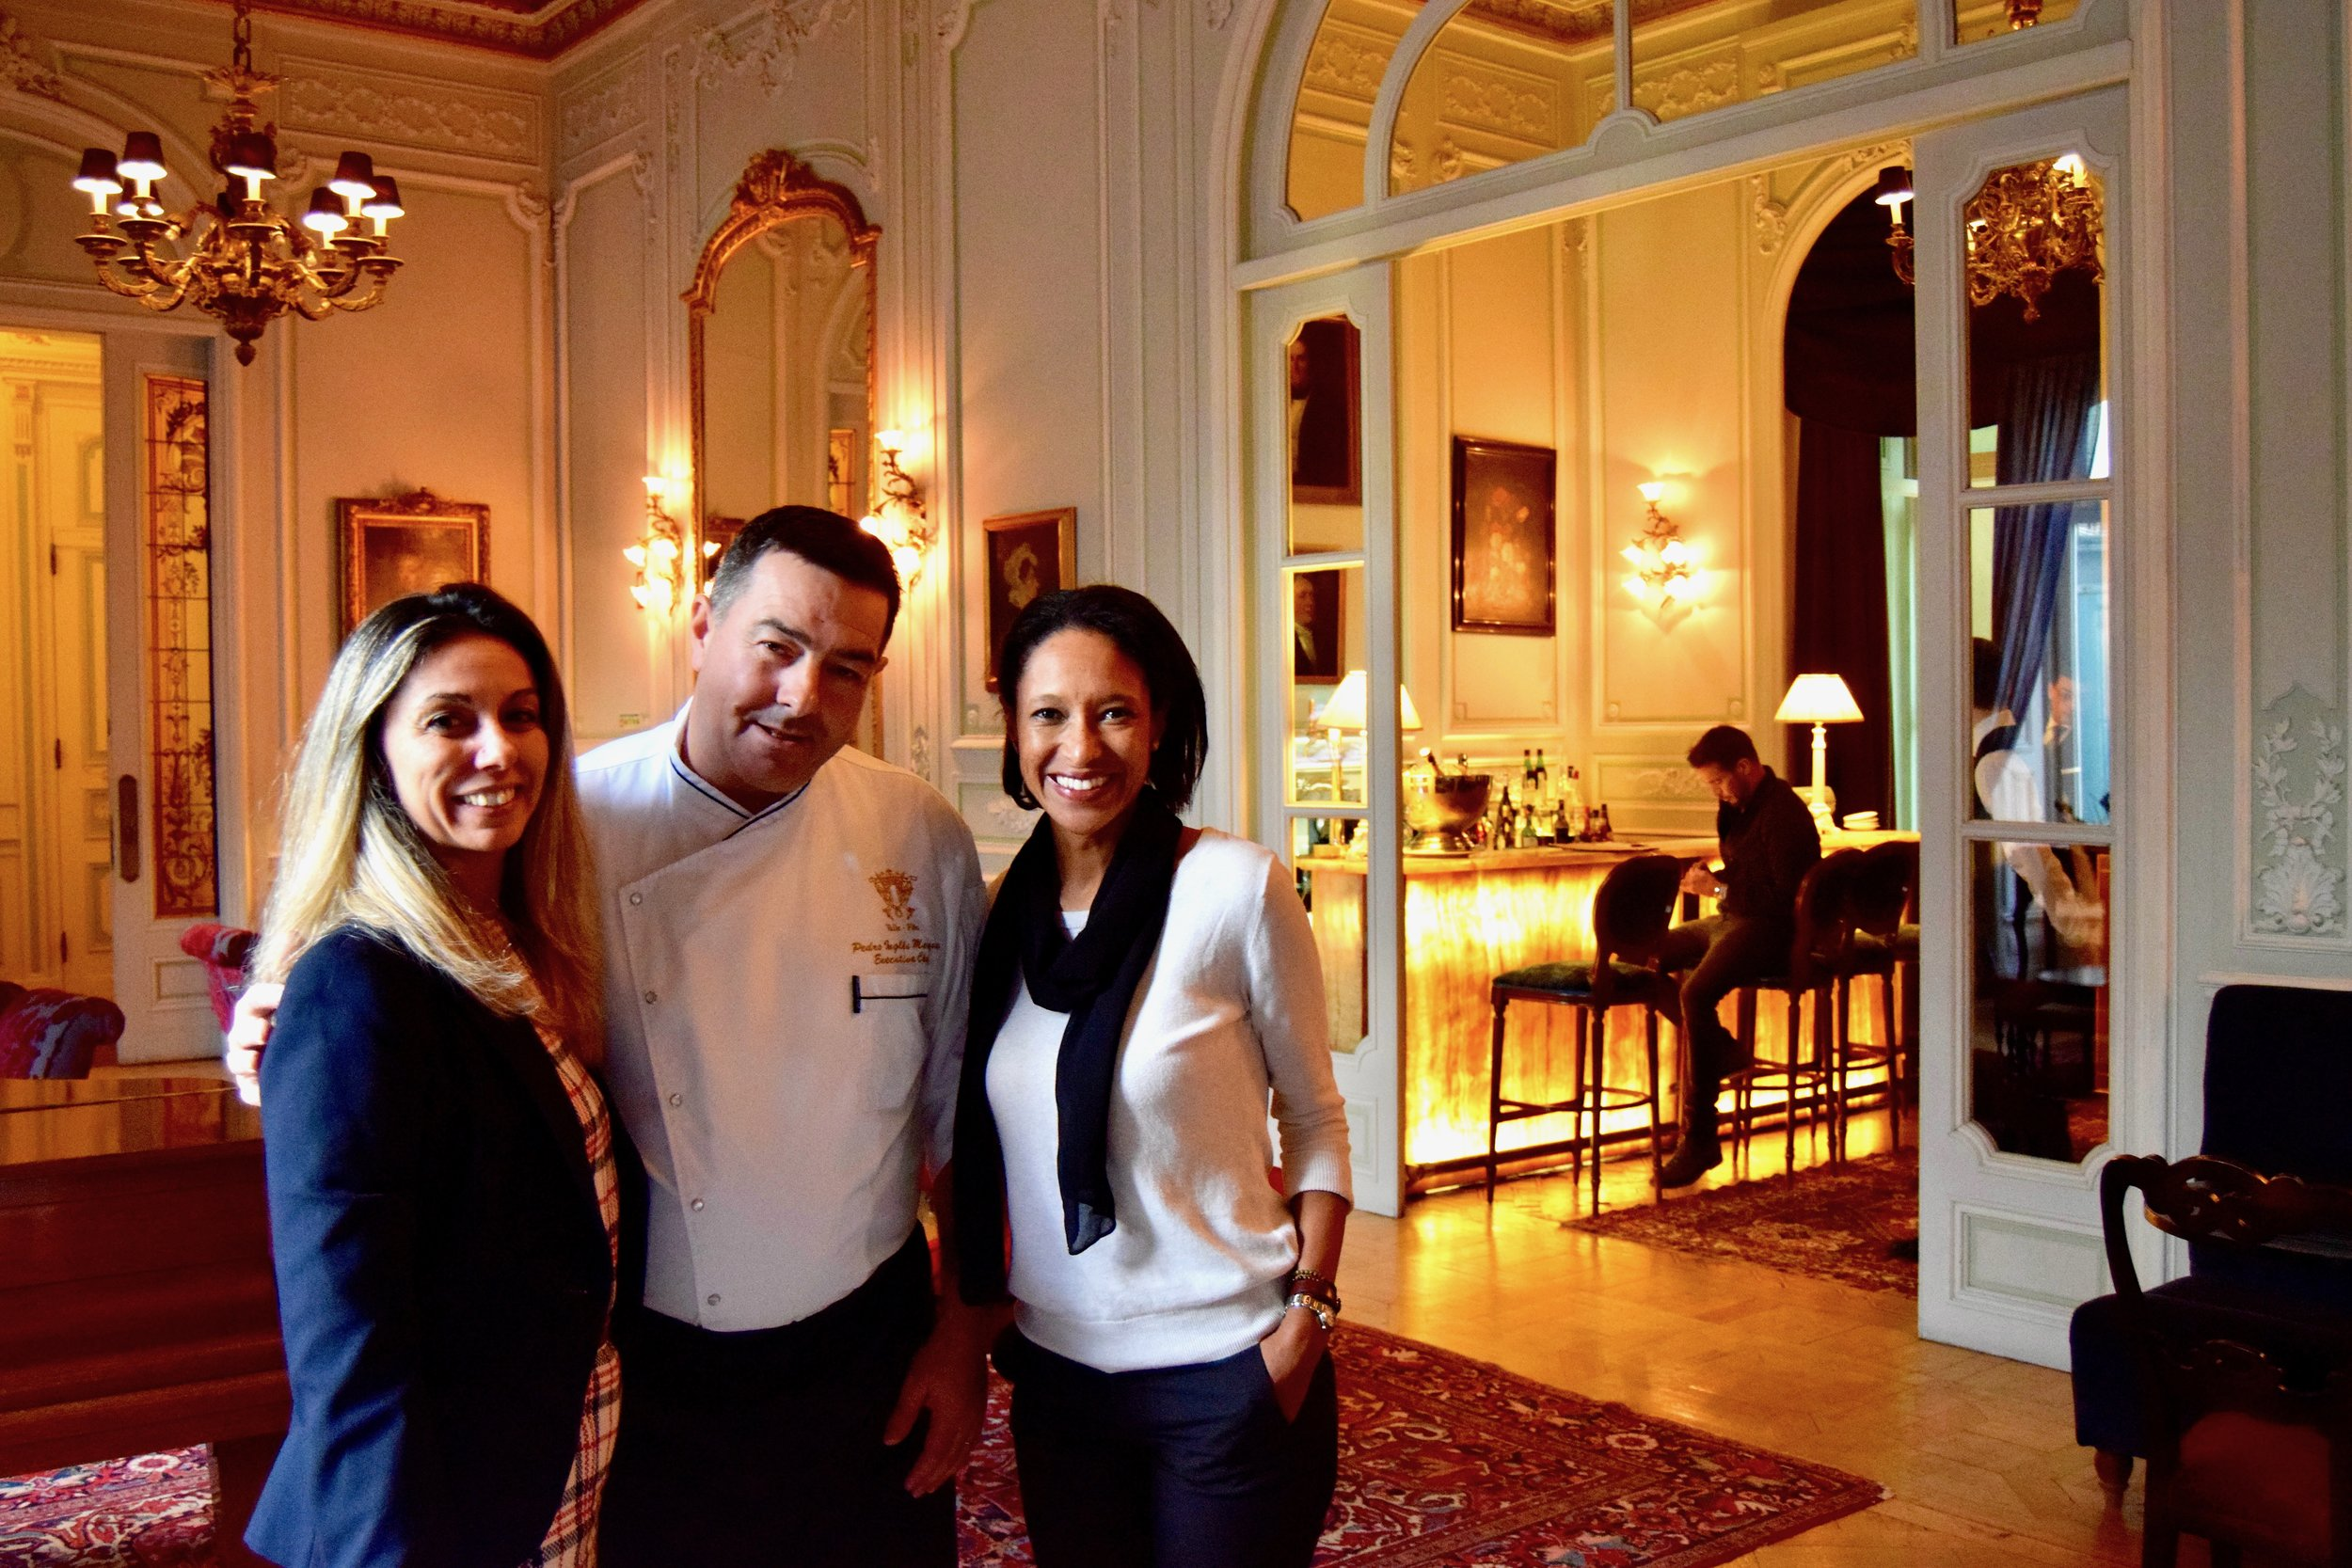 pestana palace with chef pedro marques and monica soares